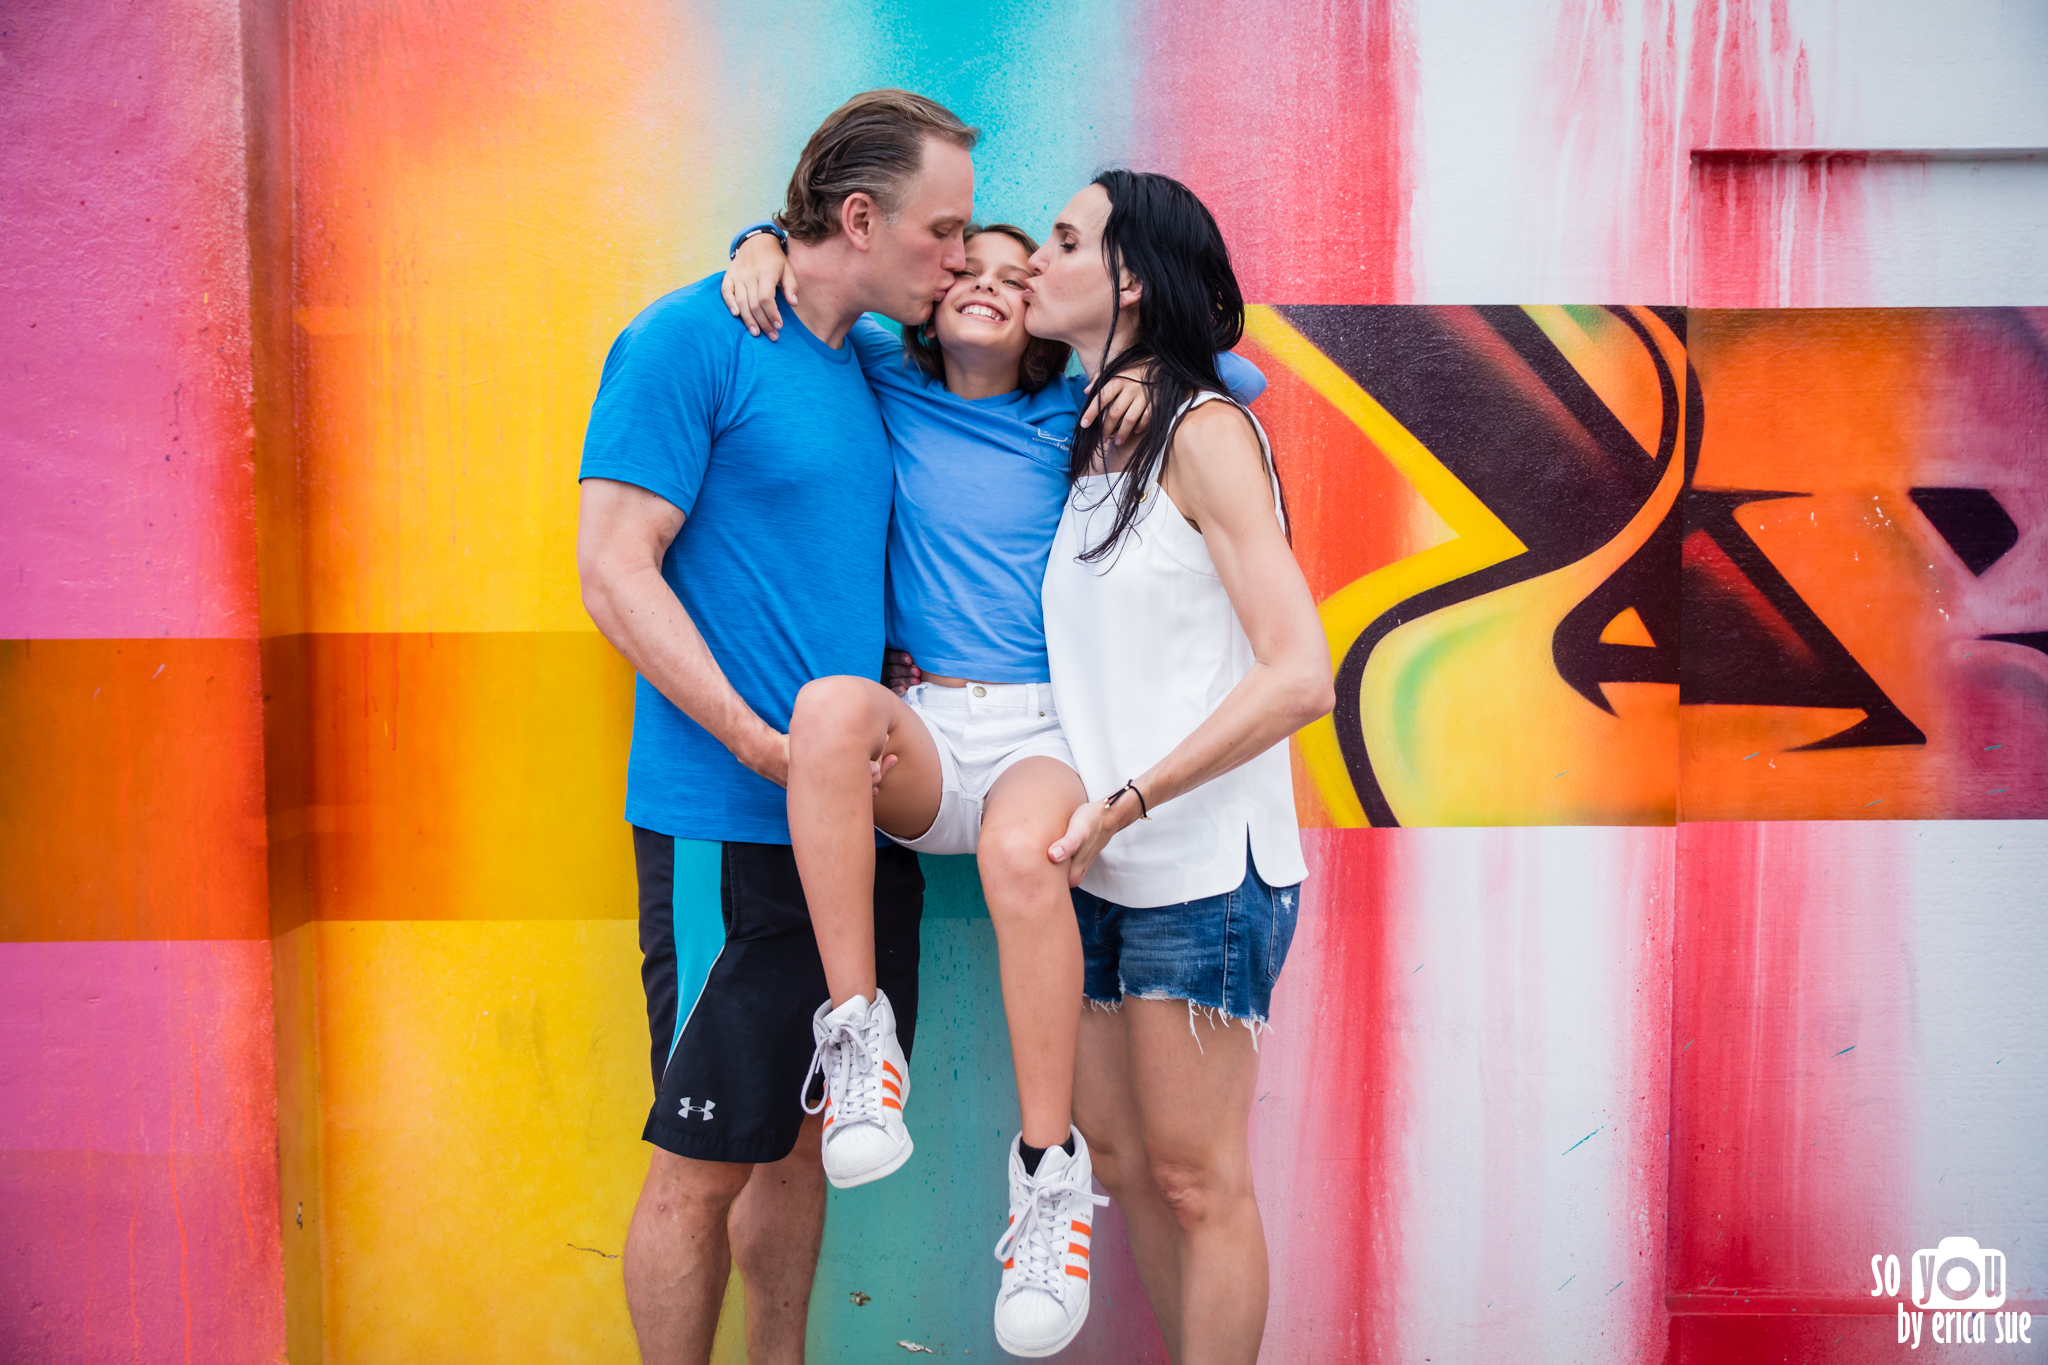 so-you-by-erica-sue-wynwood-walls-miami-photography-mitzvah-pre-shoot-5465.jpg